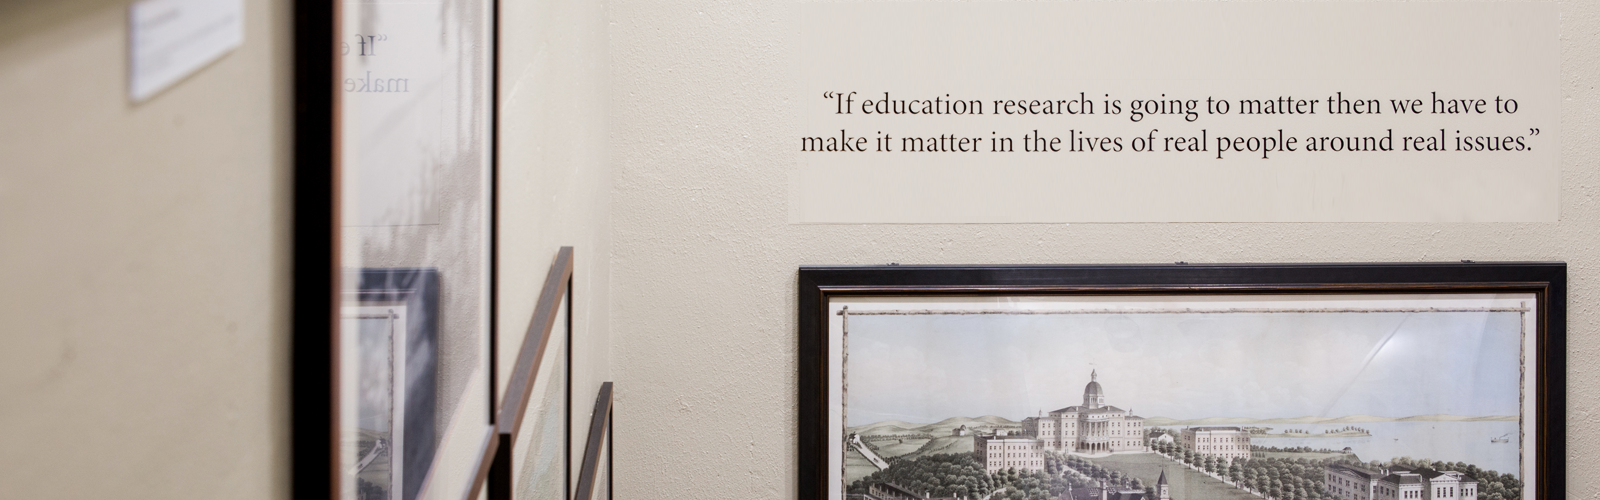 Education quote in a stairwell with illustration of campus